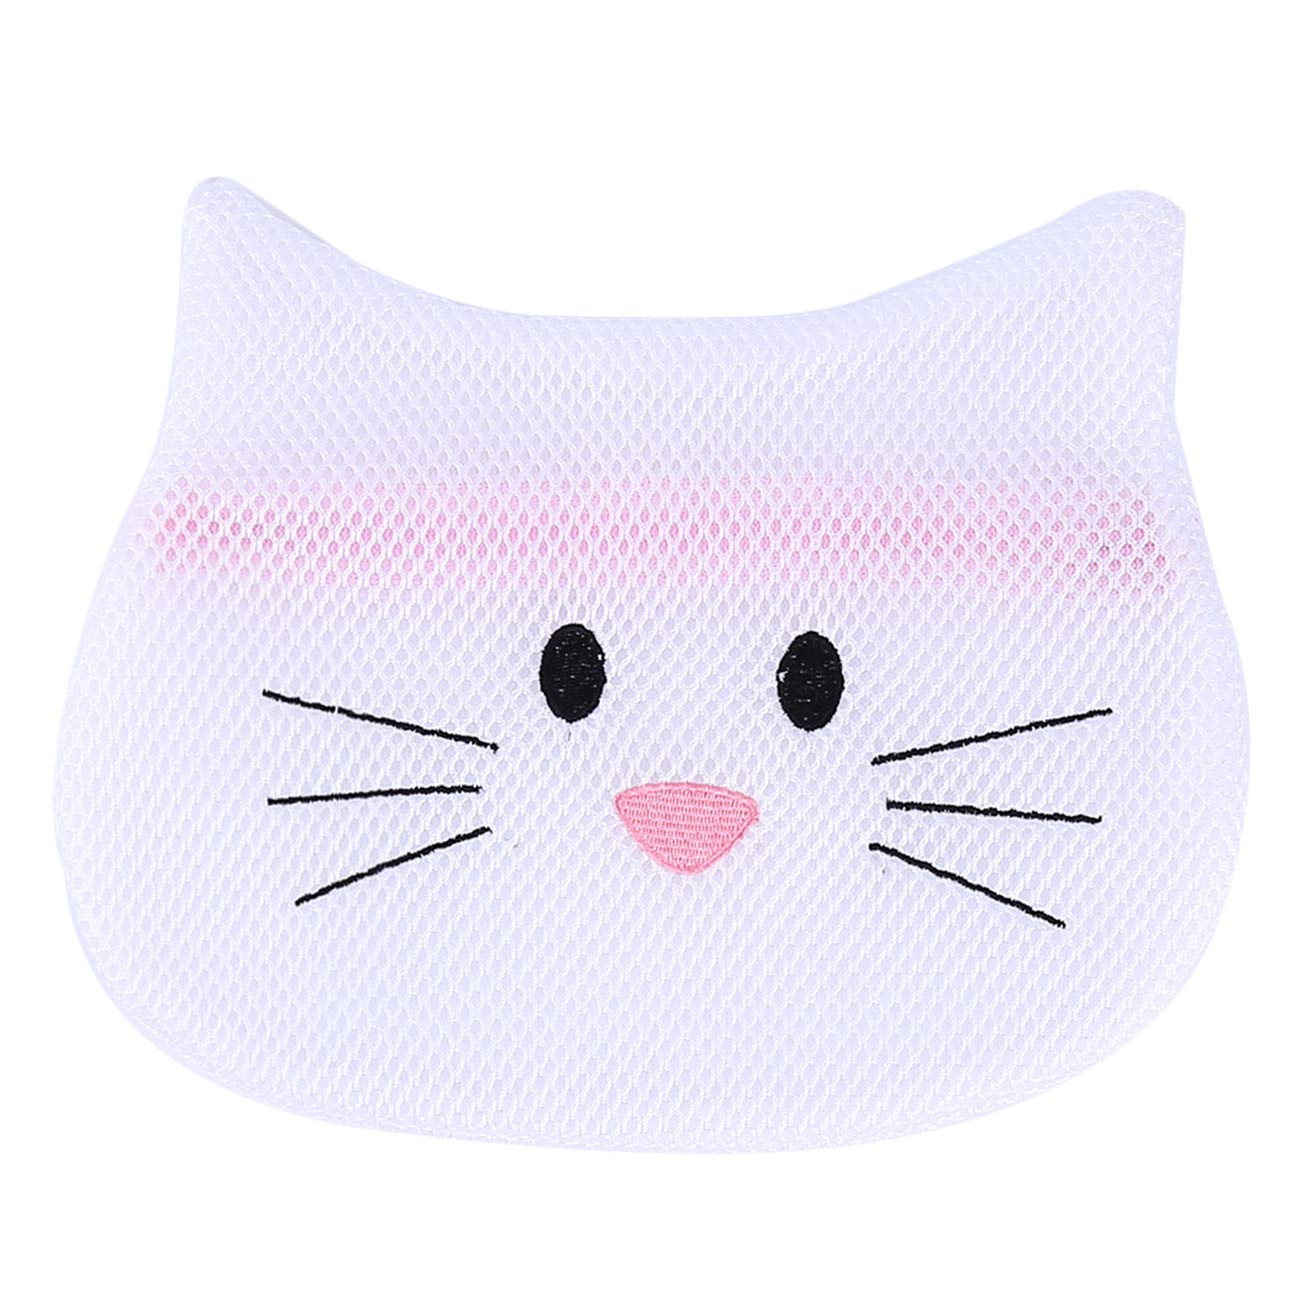 ZALING Cartoon Laundry Bags Baskets Household Cleaning Tools Laundry Wash Care Cat Model